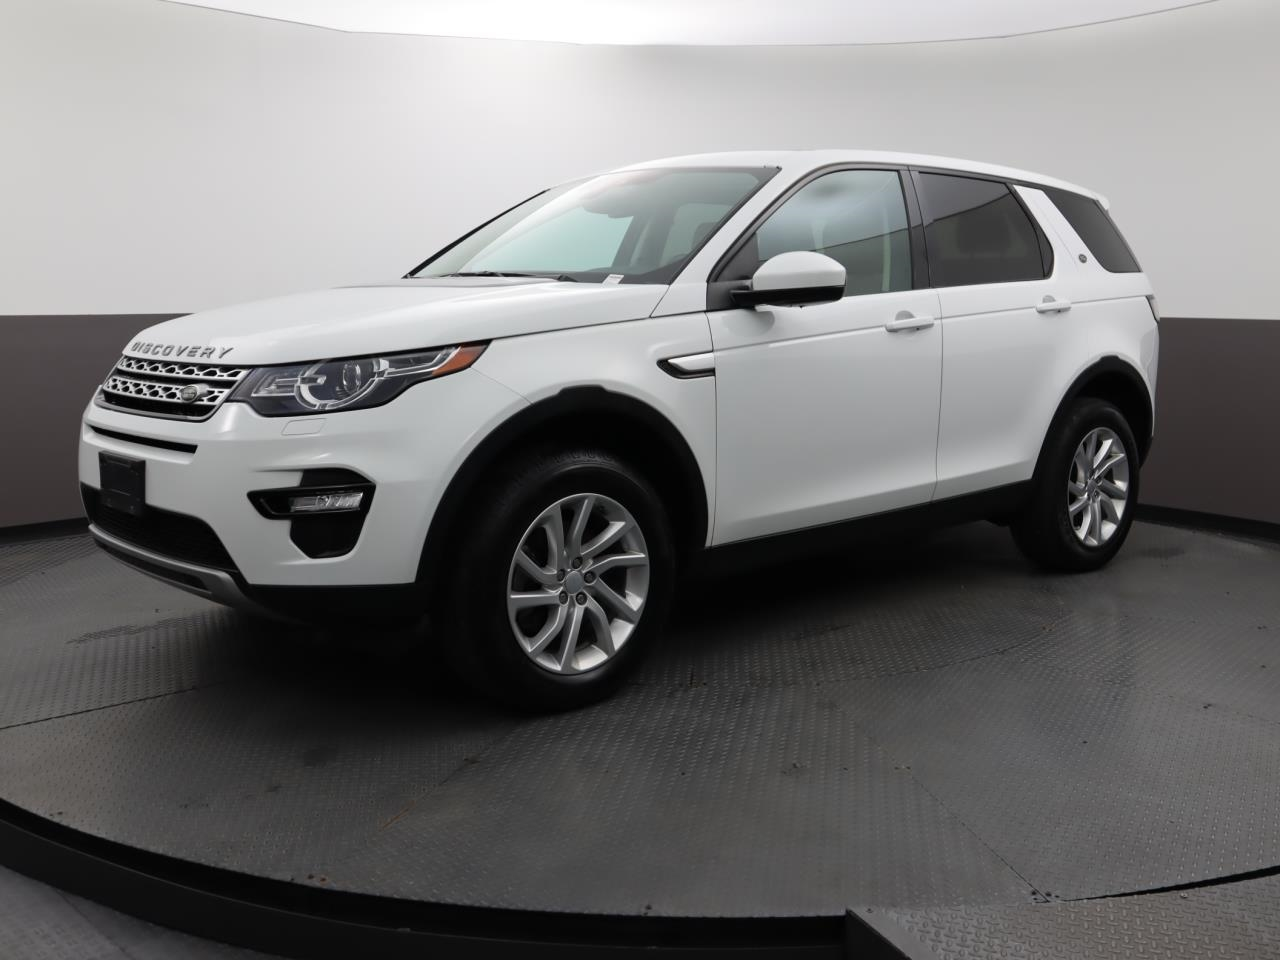 Used LAND-ROVER DISCOVERY-SPORT 2016 MIAMI HSE